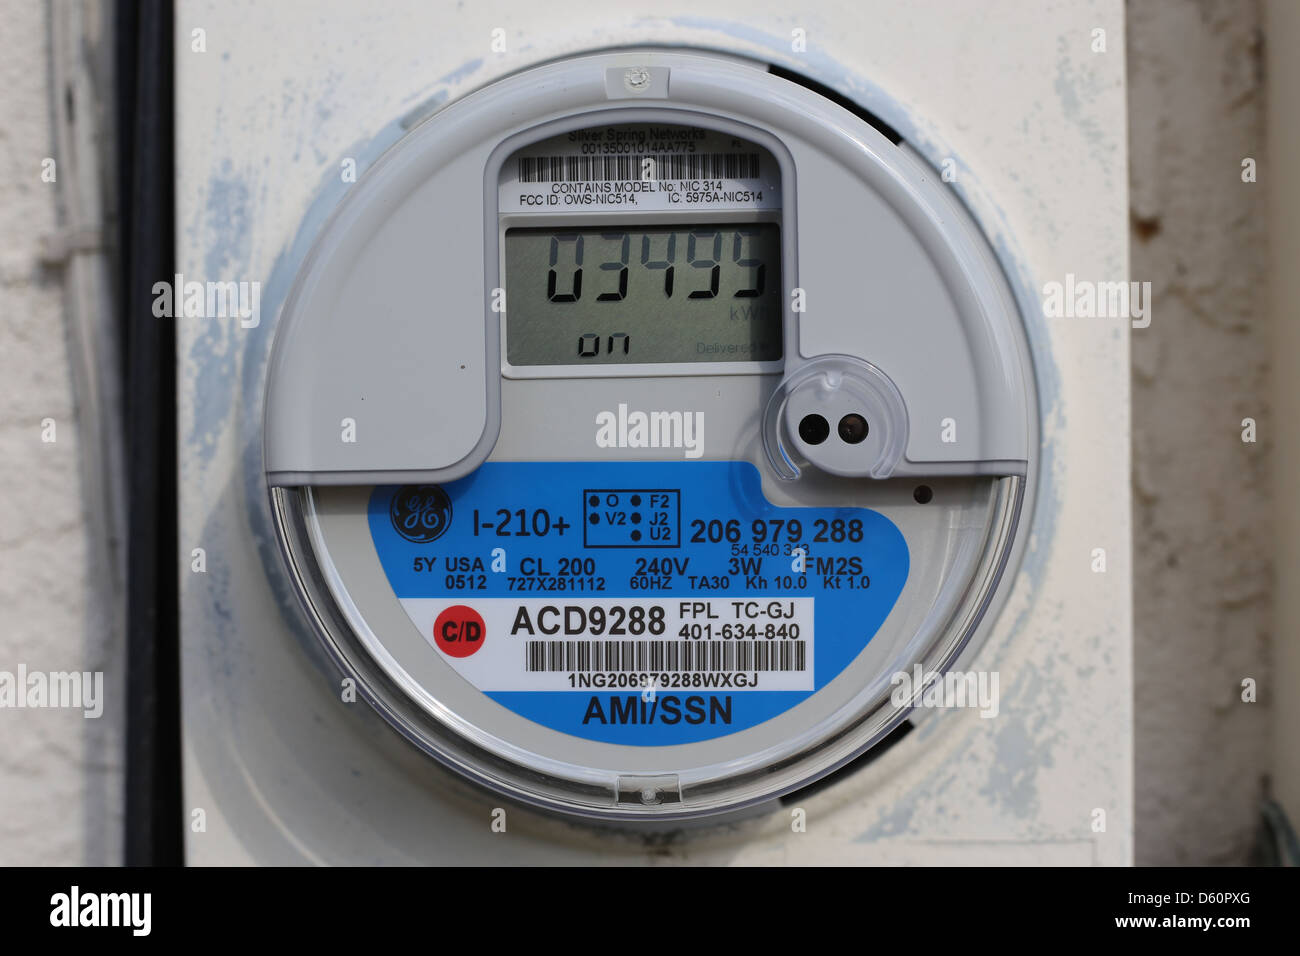 Digital Electric Meter : A new digital electric electricity power meter on the side